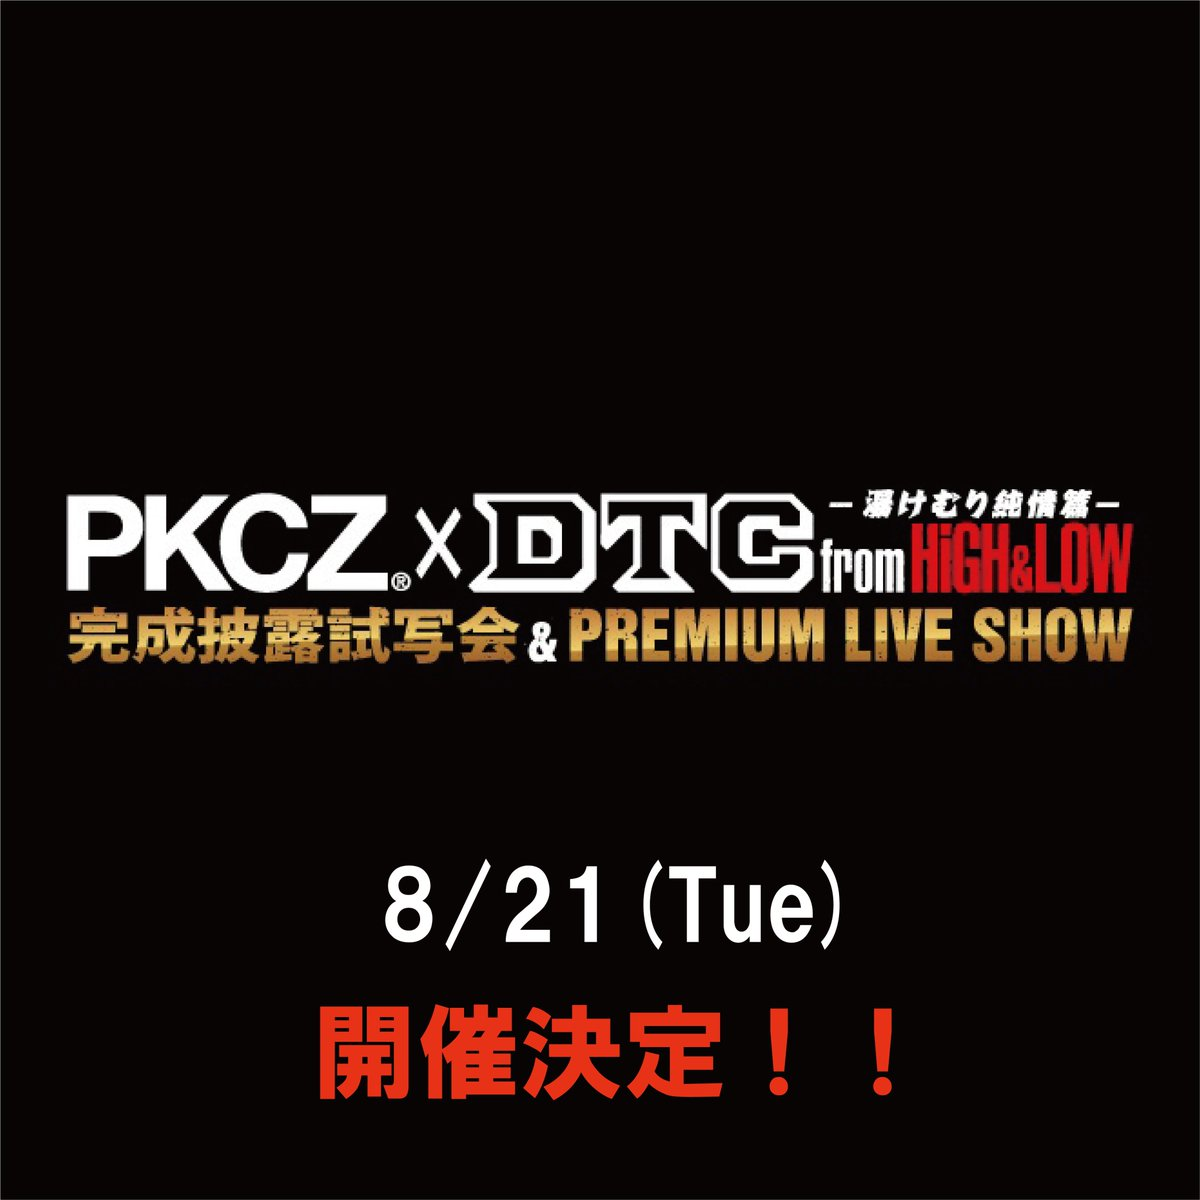 \「PKCZ®×HiGH&LOW」コラボライブイベントが決定/  今年は「PKCZ®×DTC-湯けむり純情篇-from HiGH&LOW 完成披露試写会&PREMIUM LIVE SHOW」が8月21日(火)に開催決定!  今年の夏もHiGH&LOWで盛り上がろう!!  詳しくは↓ high-low.jp/sp/event/  #HiGH_LOW #PKCZ